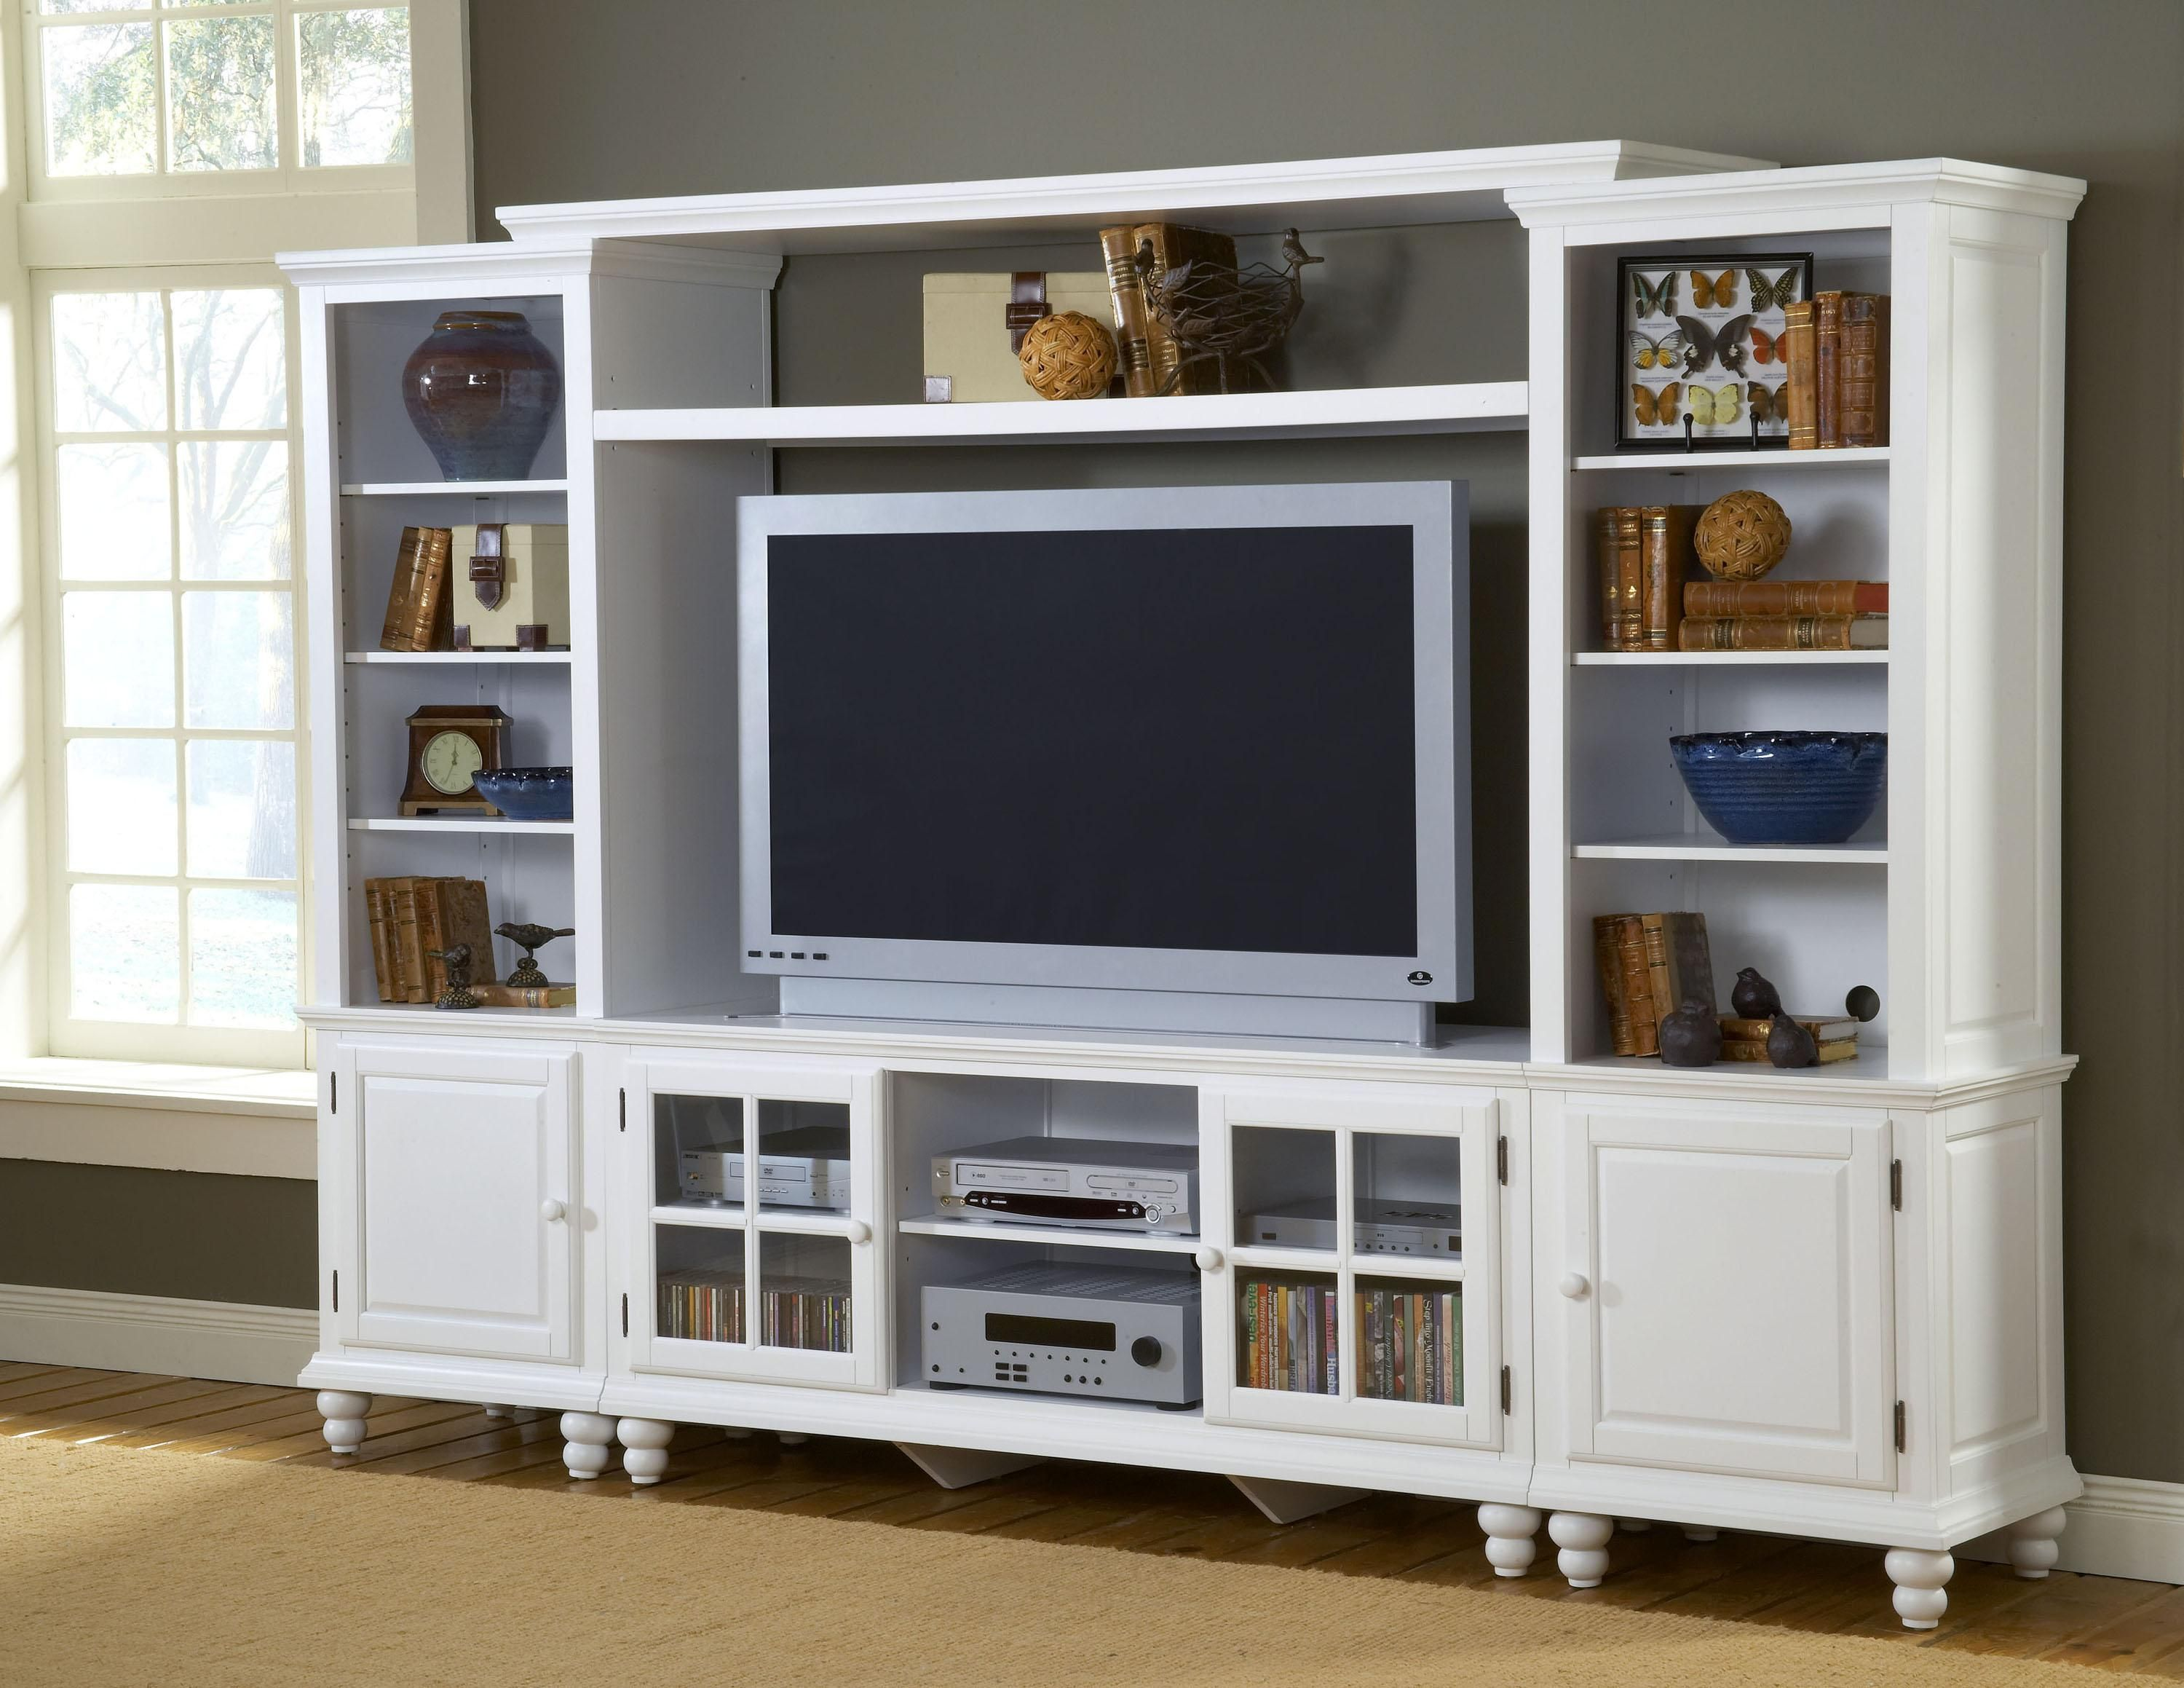 Hillsdale Furniture Grand Bay Entertainment Center With Bridge For TVs Up  To White, Wall Unit